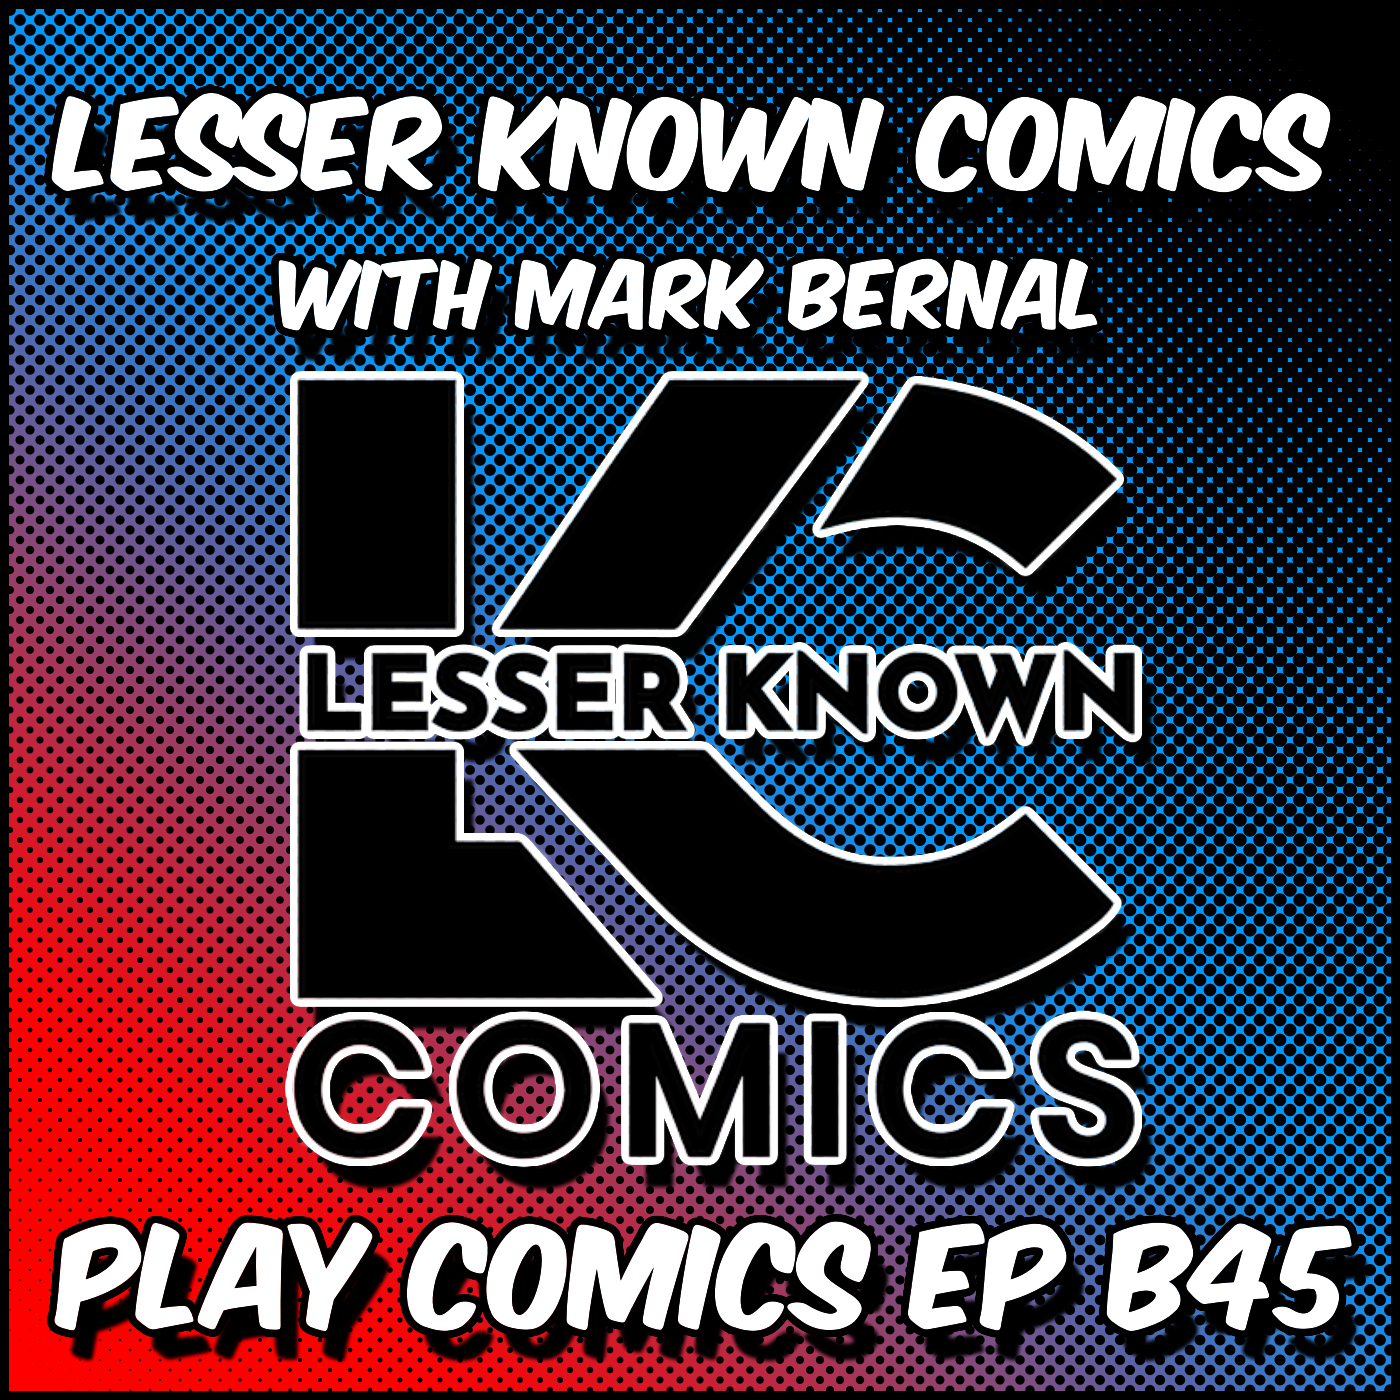 Lesser Known Comics with Mark Bernal